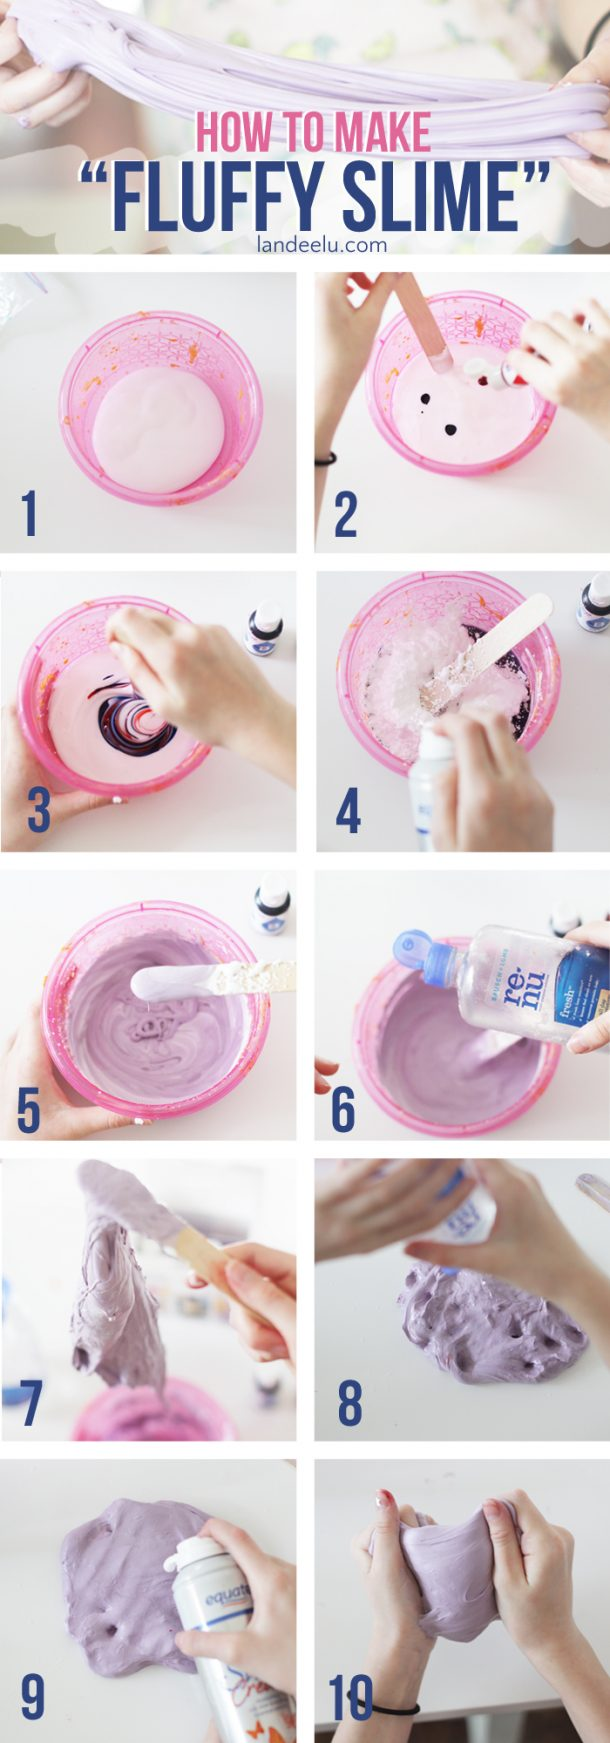 so slime diy instructions